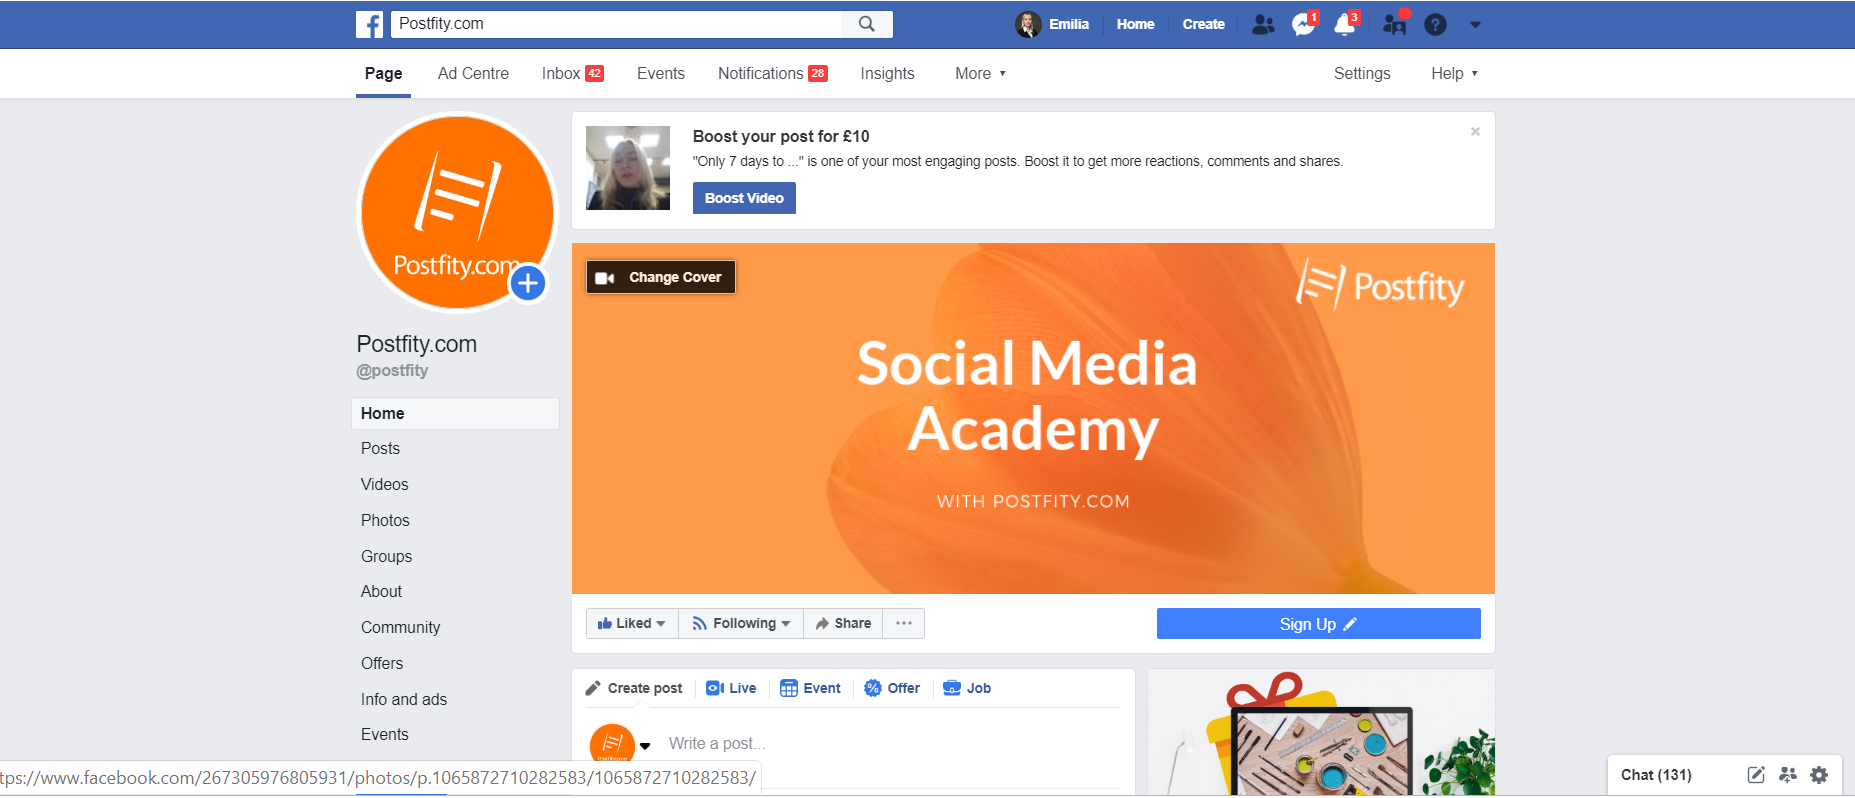 Facebook Marketing Strategy - The Ultimate Guide to Facebook